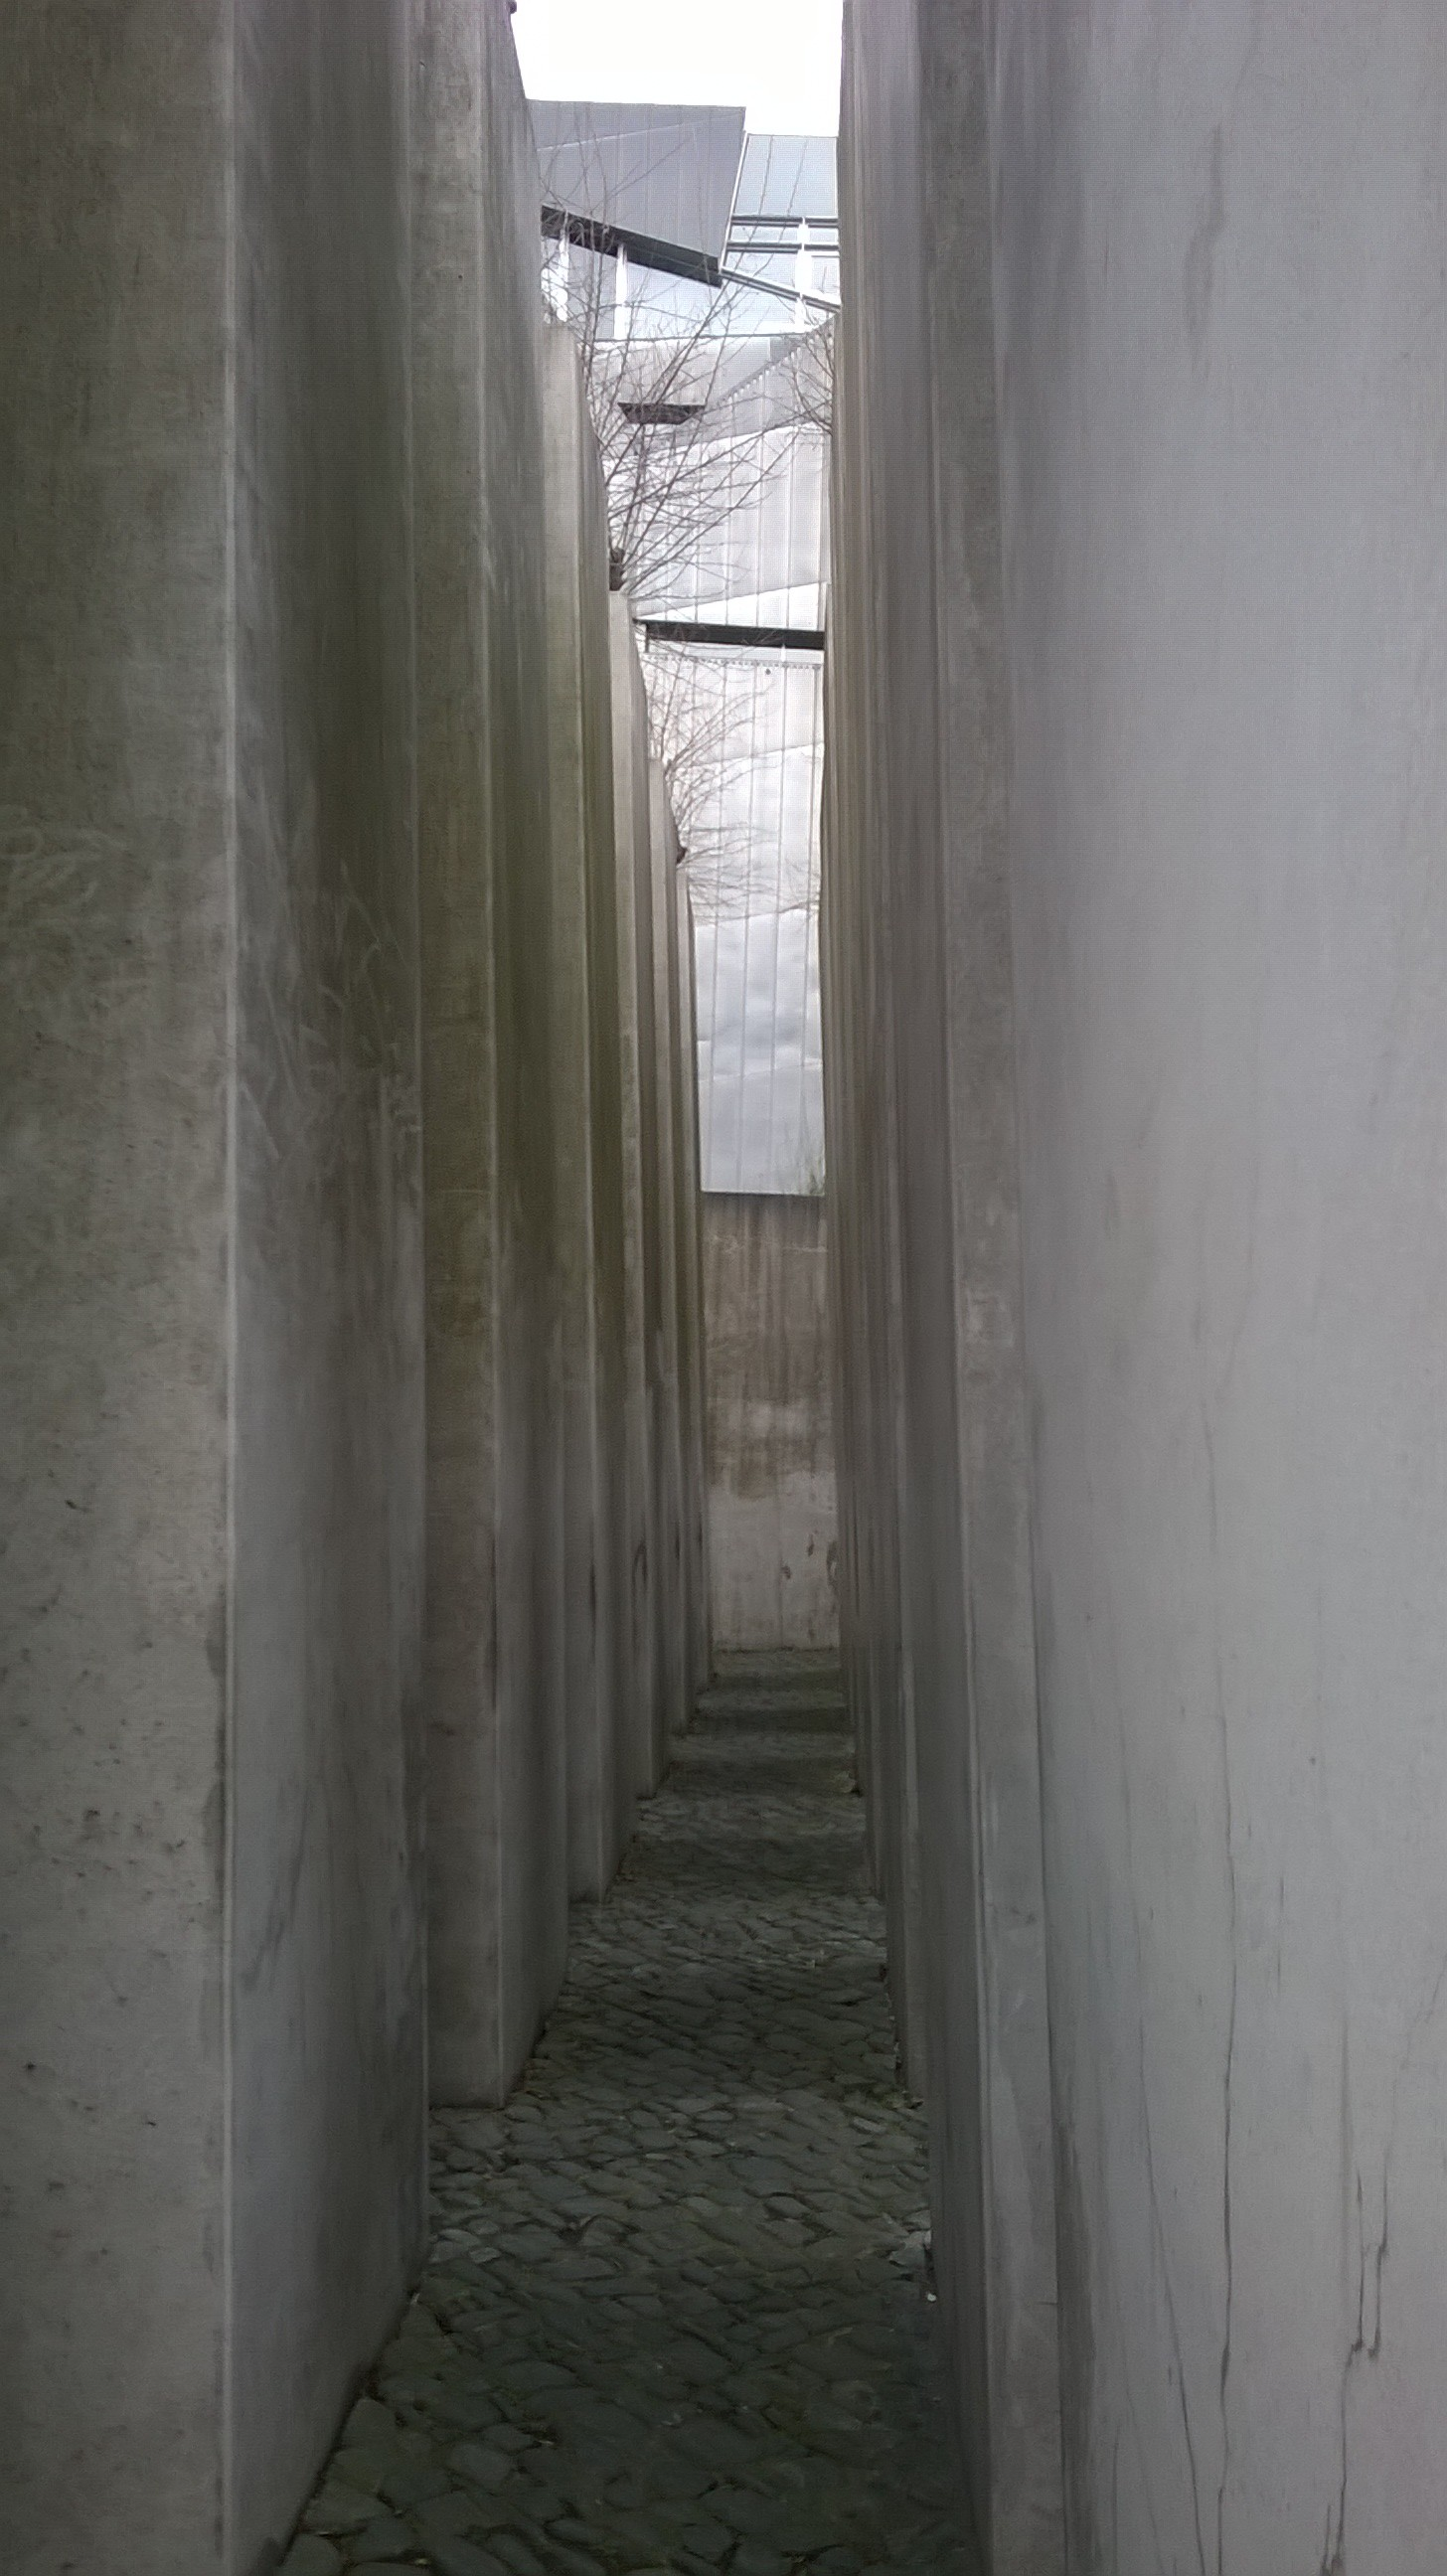 One of the best museums about the Holocaust in Europe